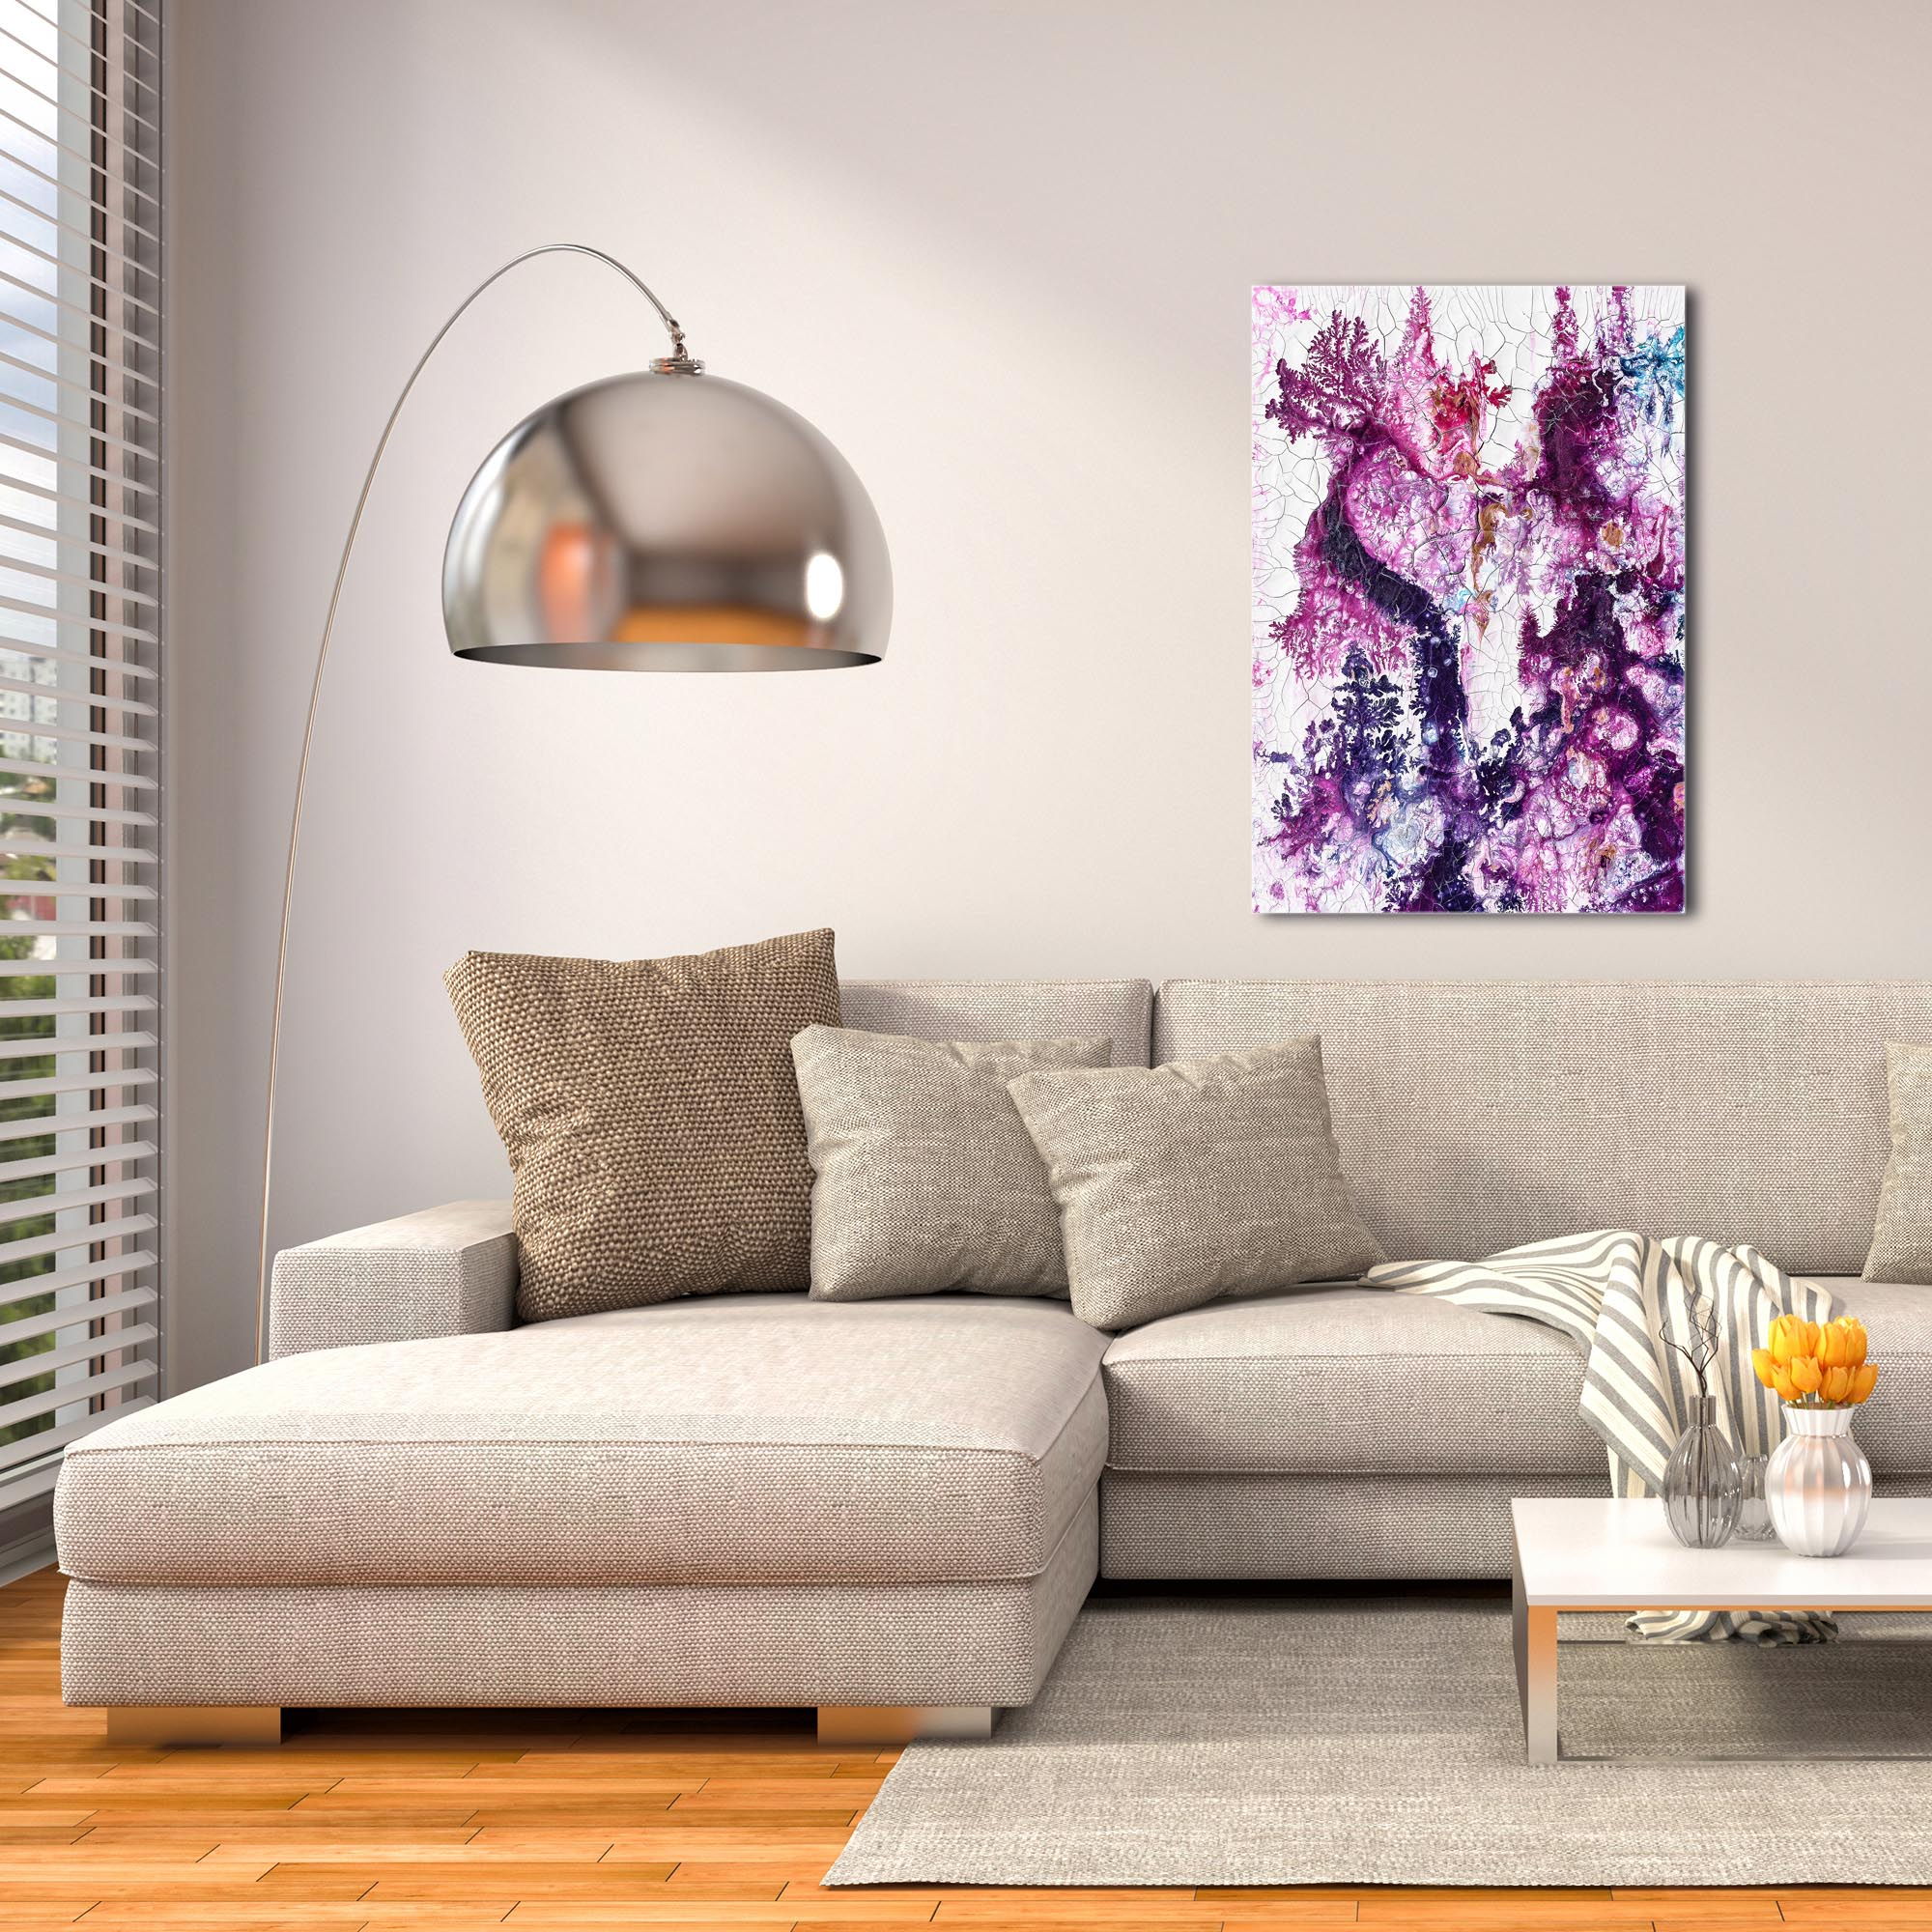 Abstract Wall Art 'Cracks 3' - Urban Decor on Metal or Plexiglass - Image 3